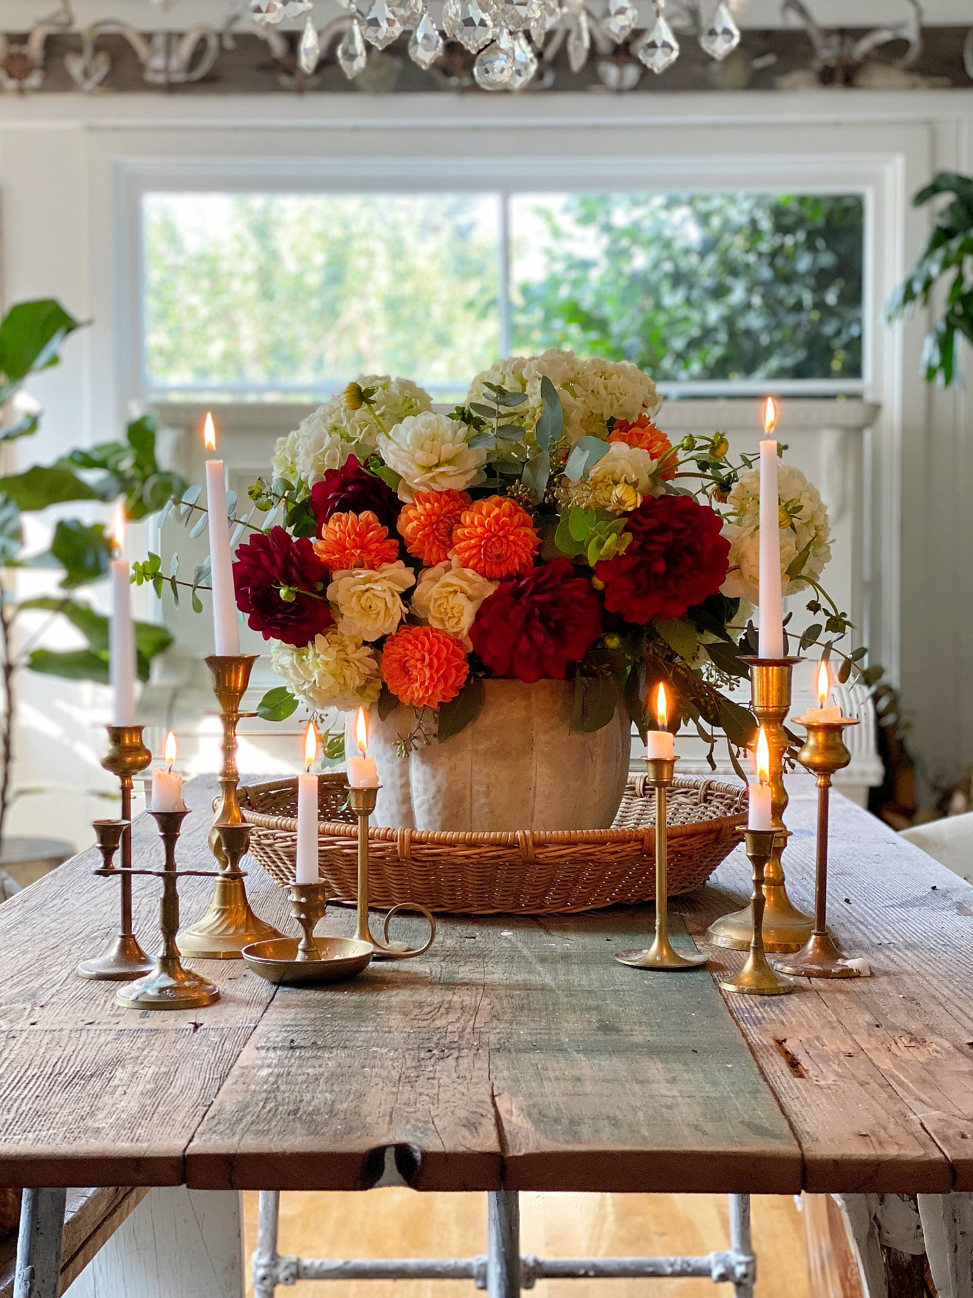 Cement pumpkin bowl sits on a wood table, filled with flowers and surrounded by vintage candles.